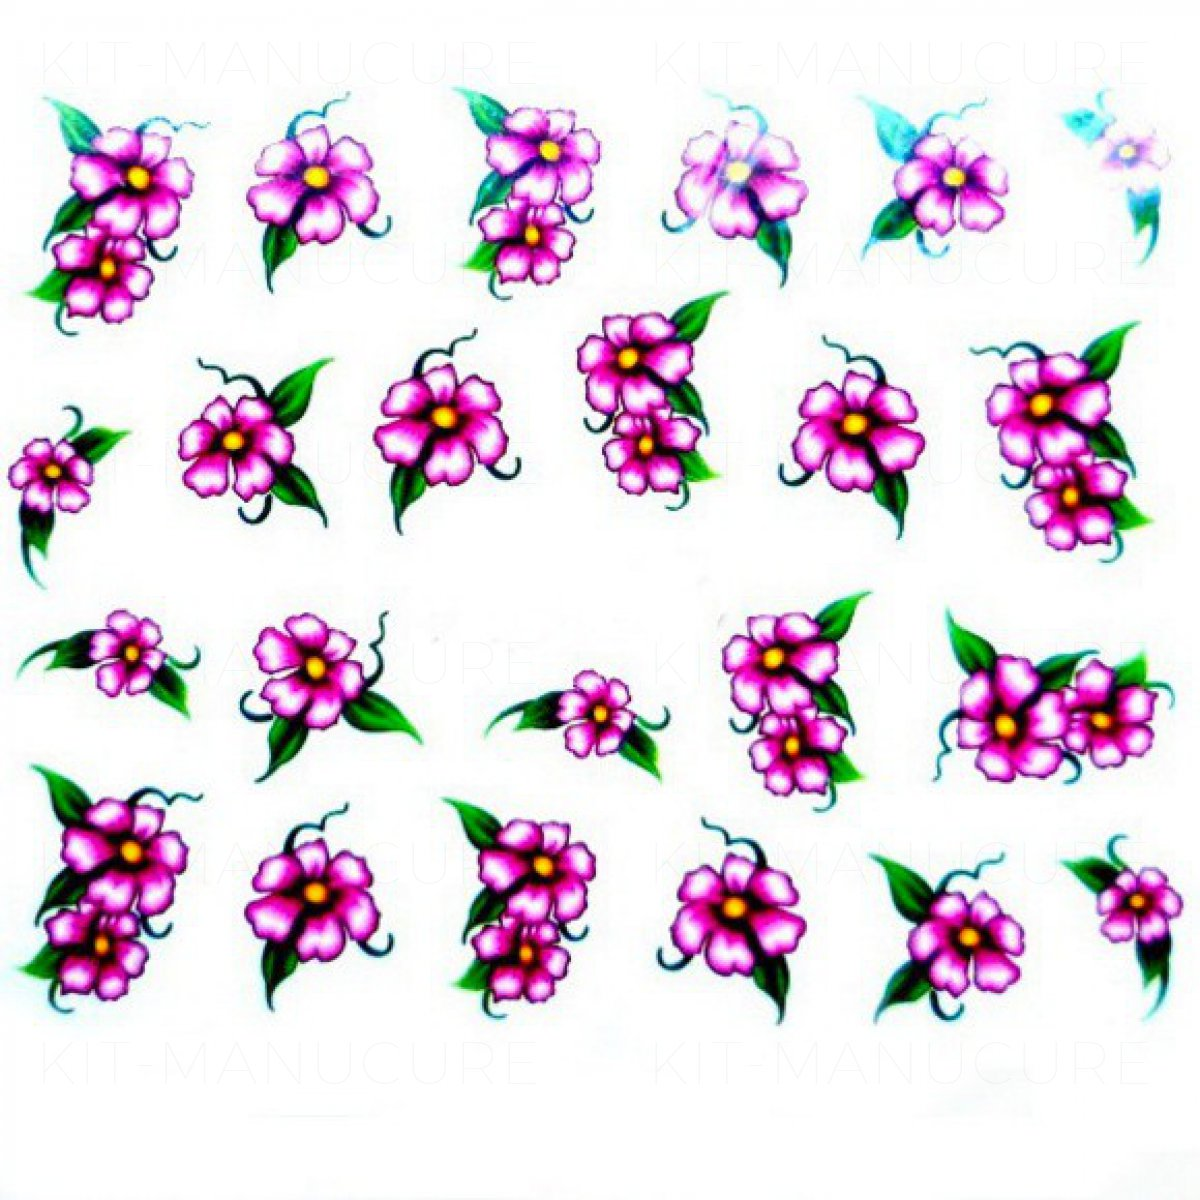 https://www.kit-manucure.com/2066-thickbox_default/water-decals-fleurs-roses-et-feuilles-vertes.jpg